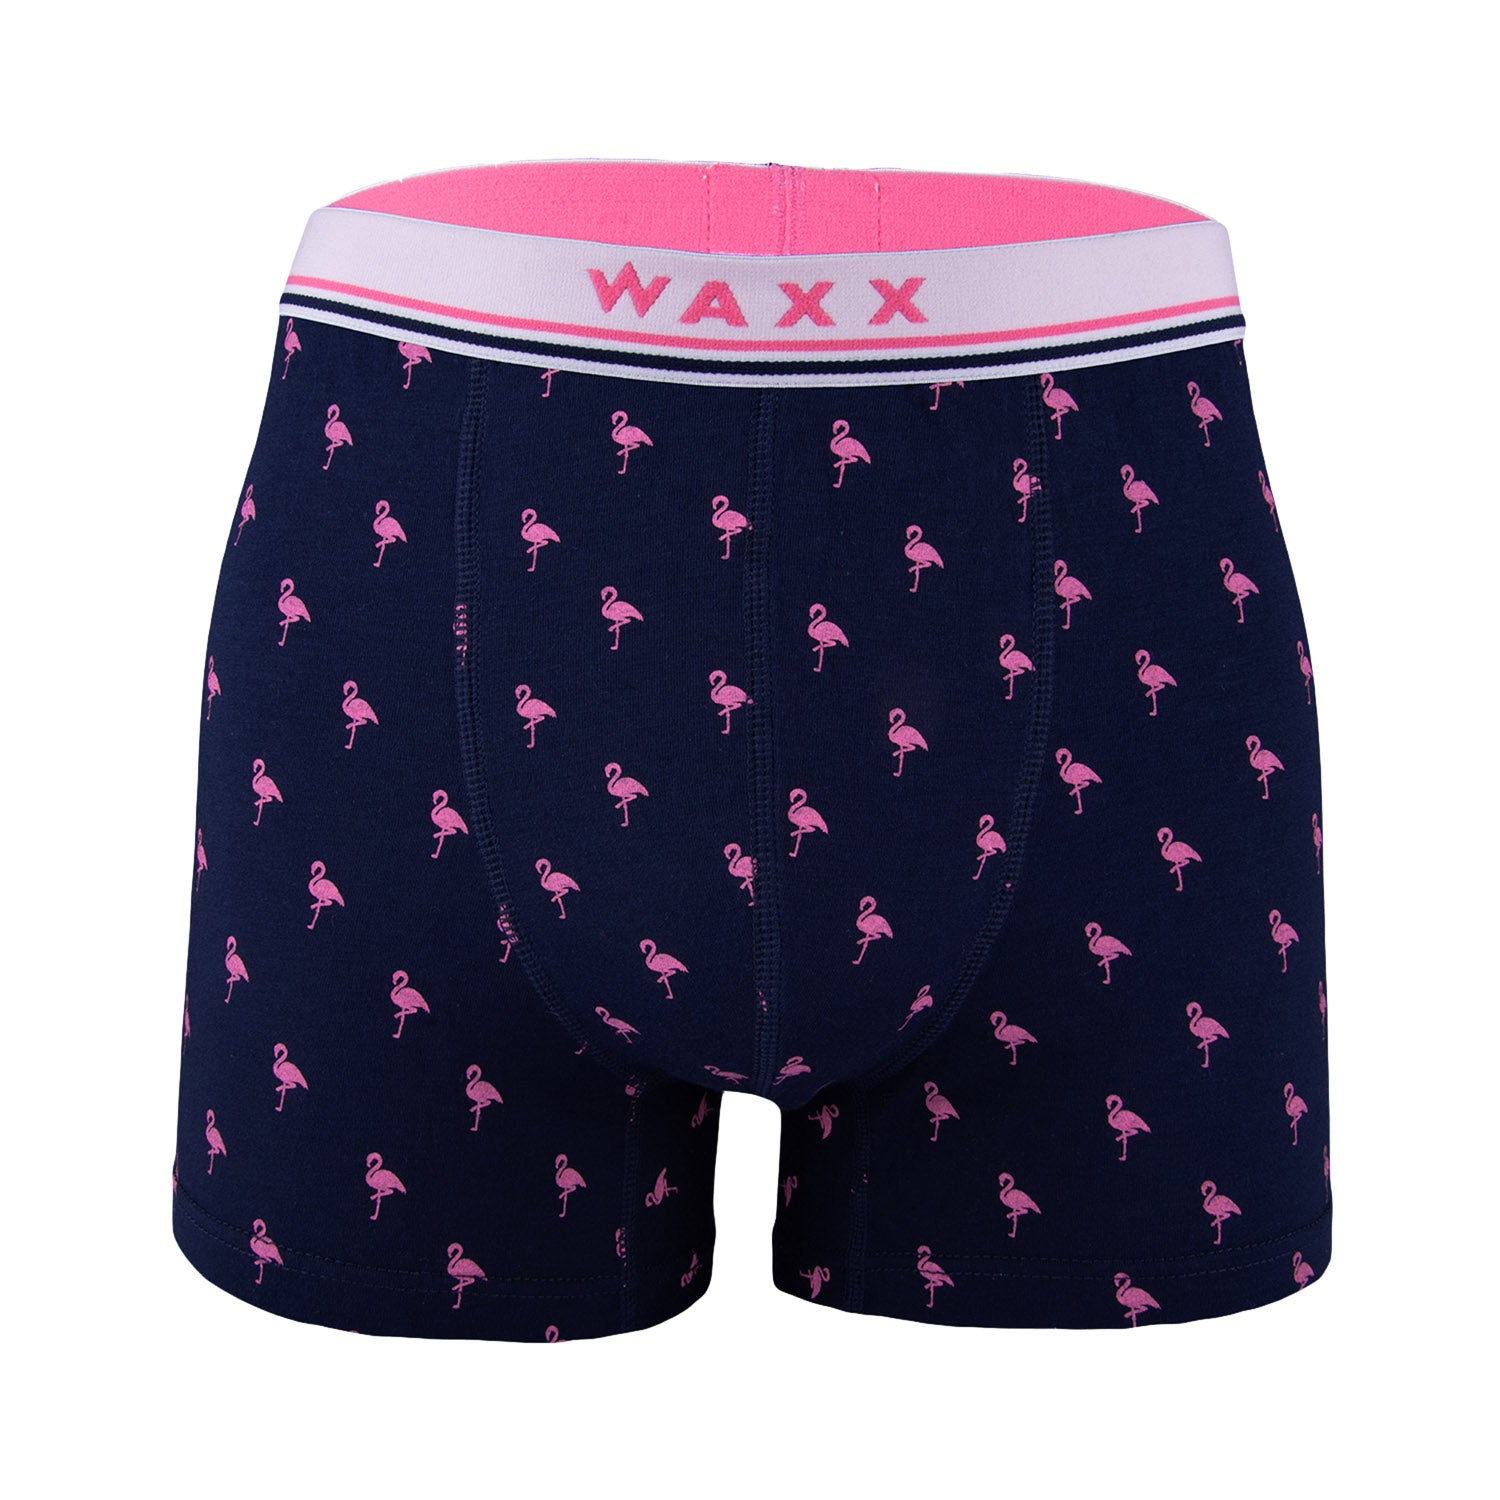 Waxx Men's Trunk Boxer Short Flamingo